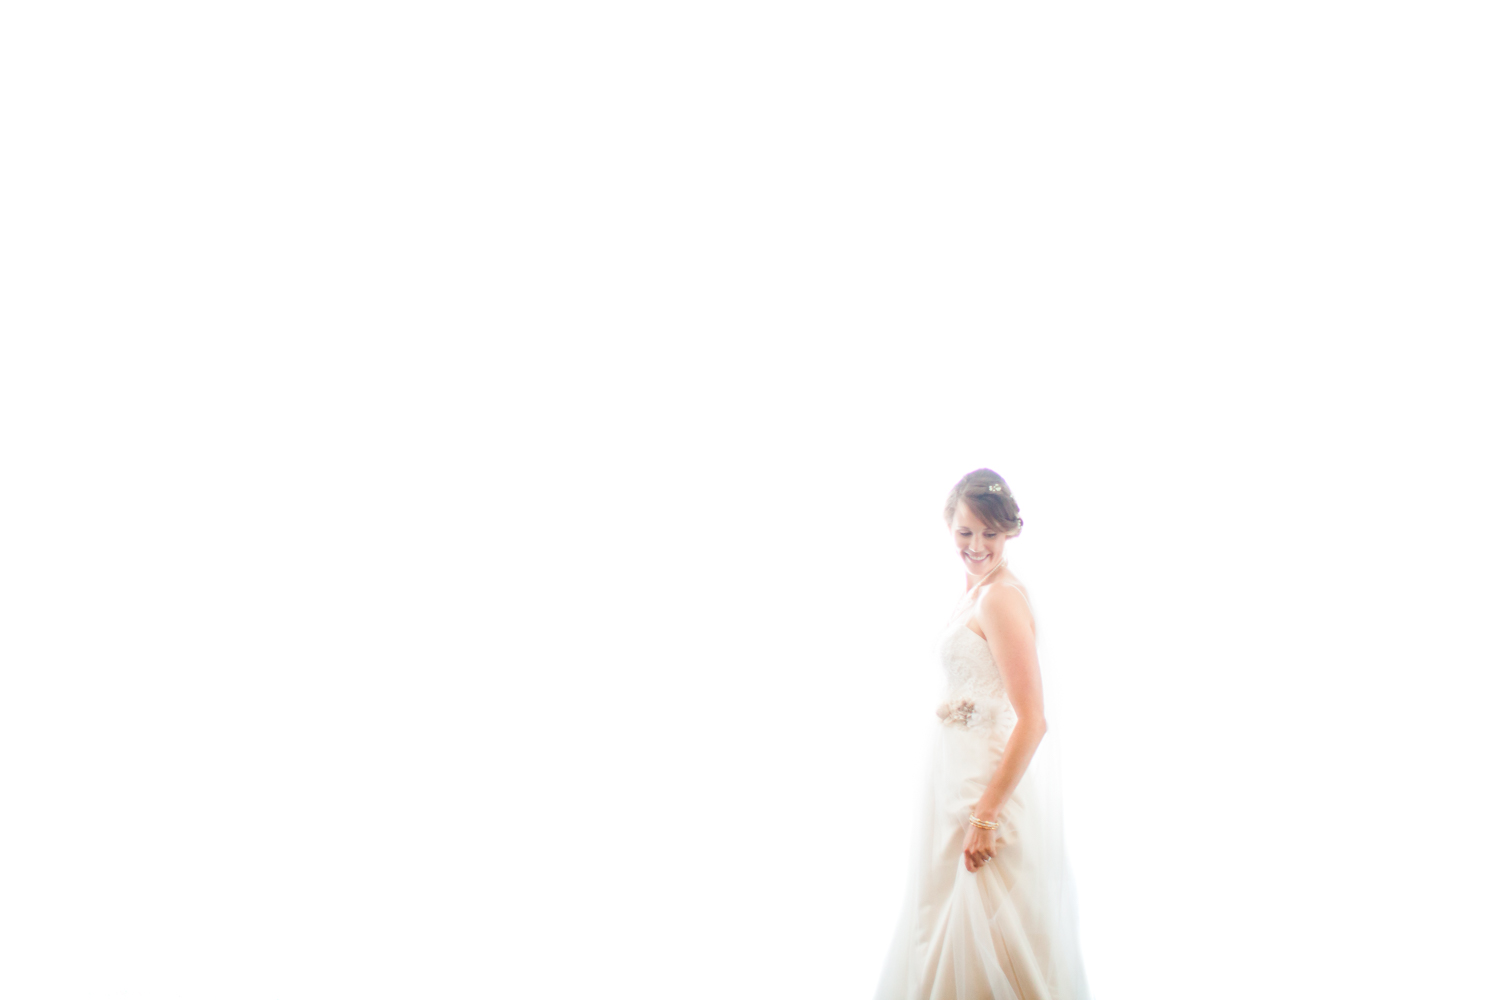 Valerie-Kenny-Chicago-Wedding-Photography-22.jpg